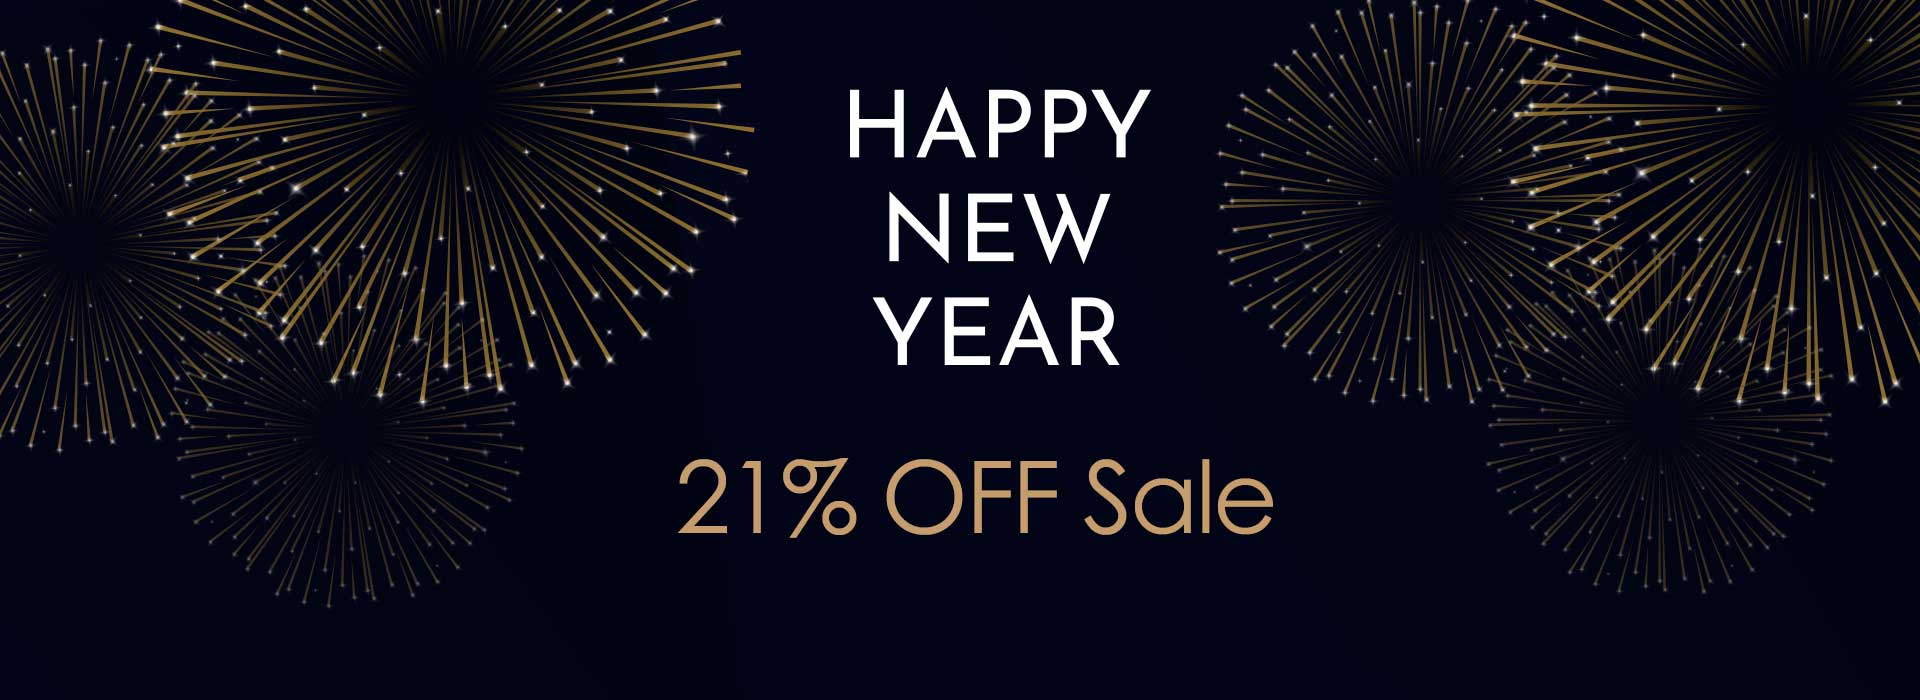 Happy New Year - 21% OFF Sale